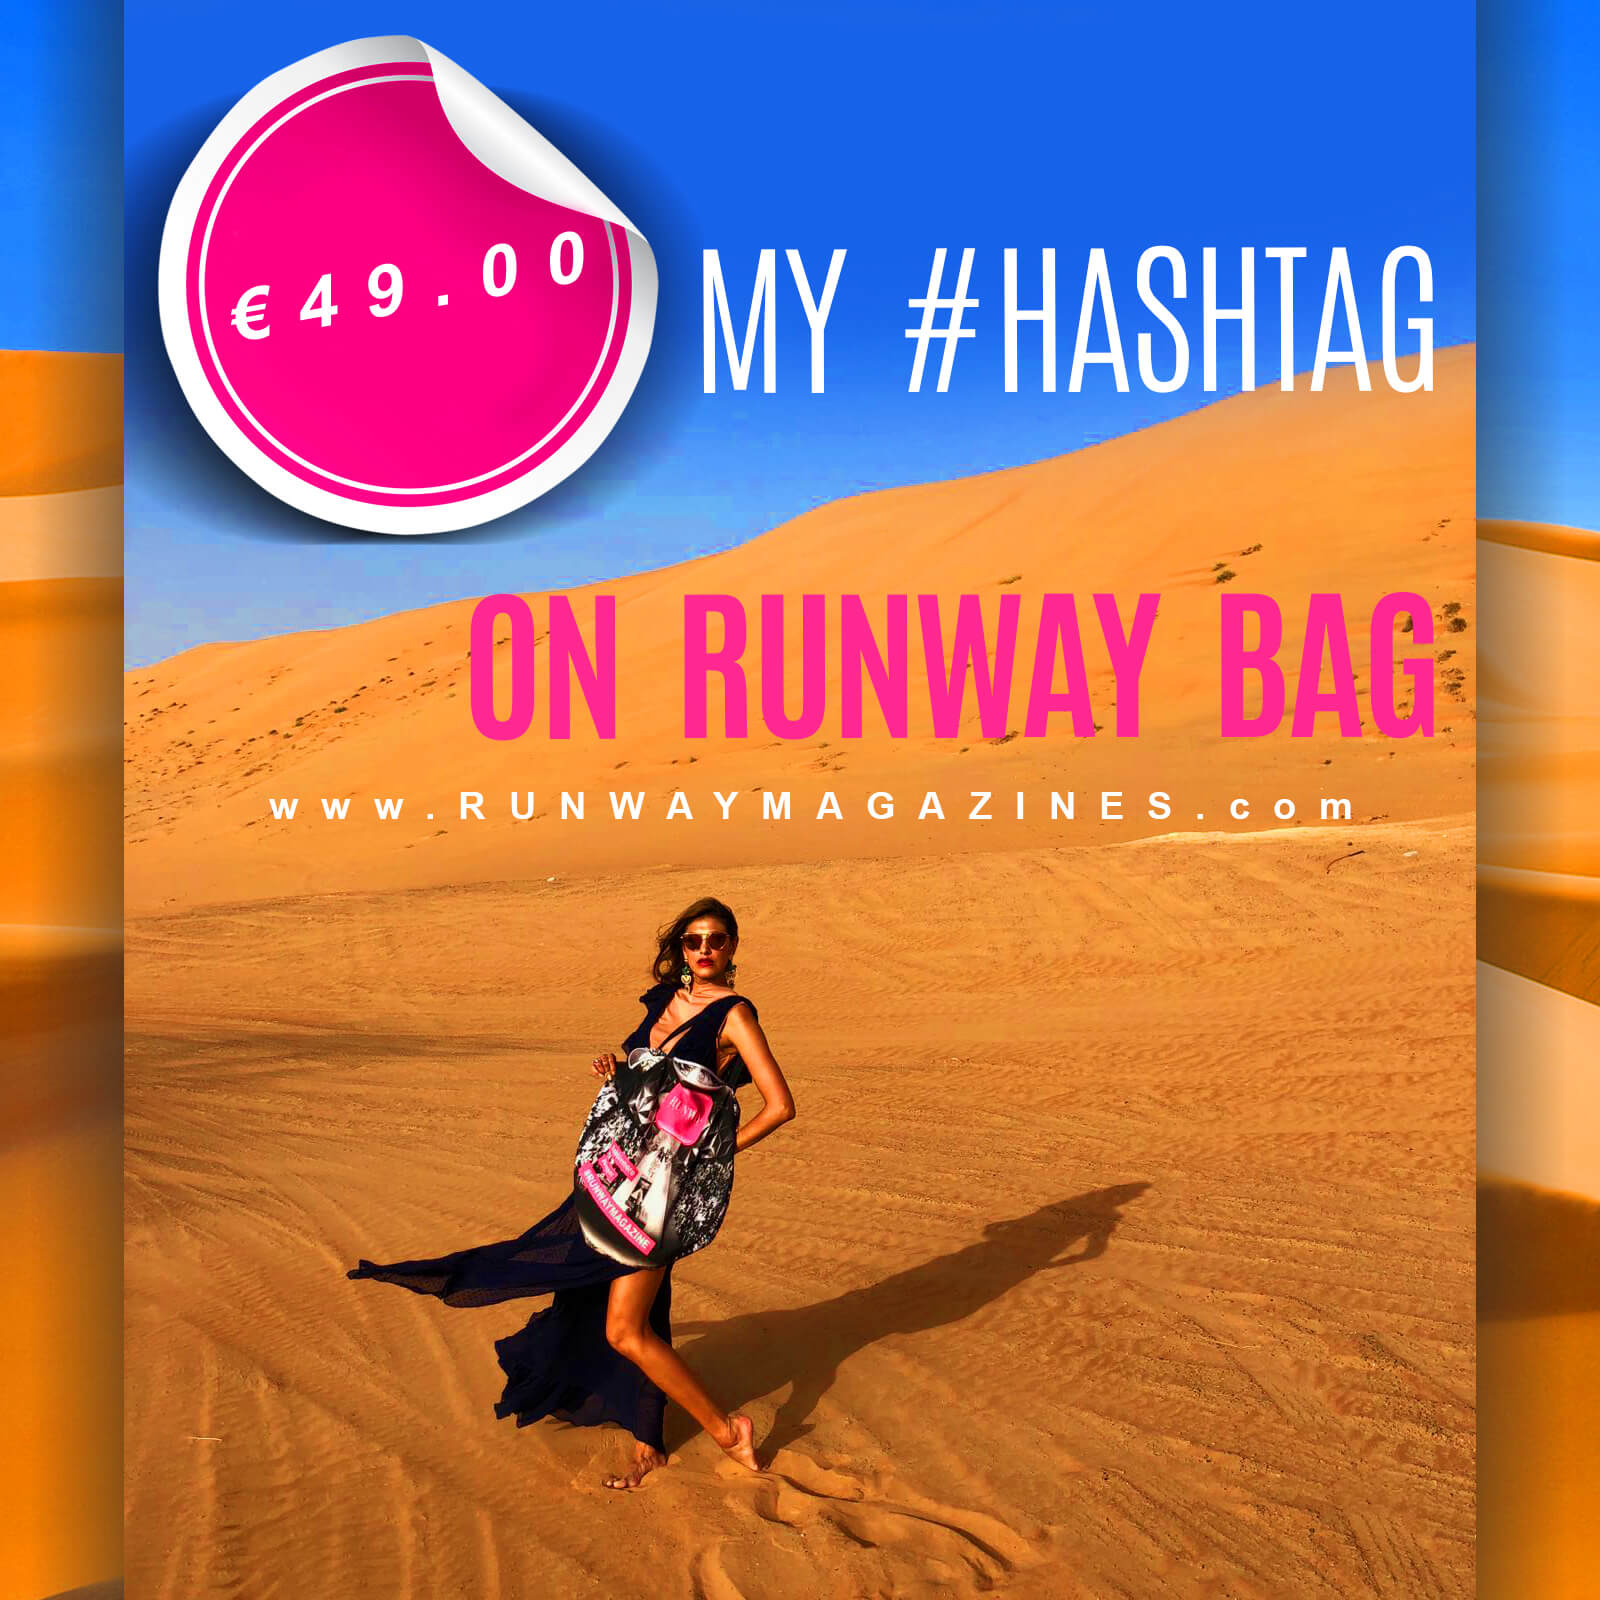 MY #HASHTAG ON RUNWAY BAG